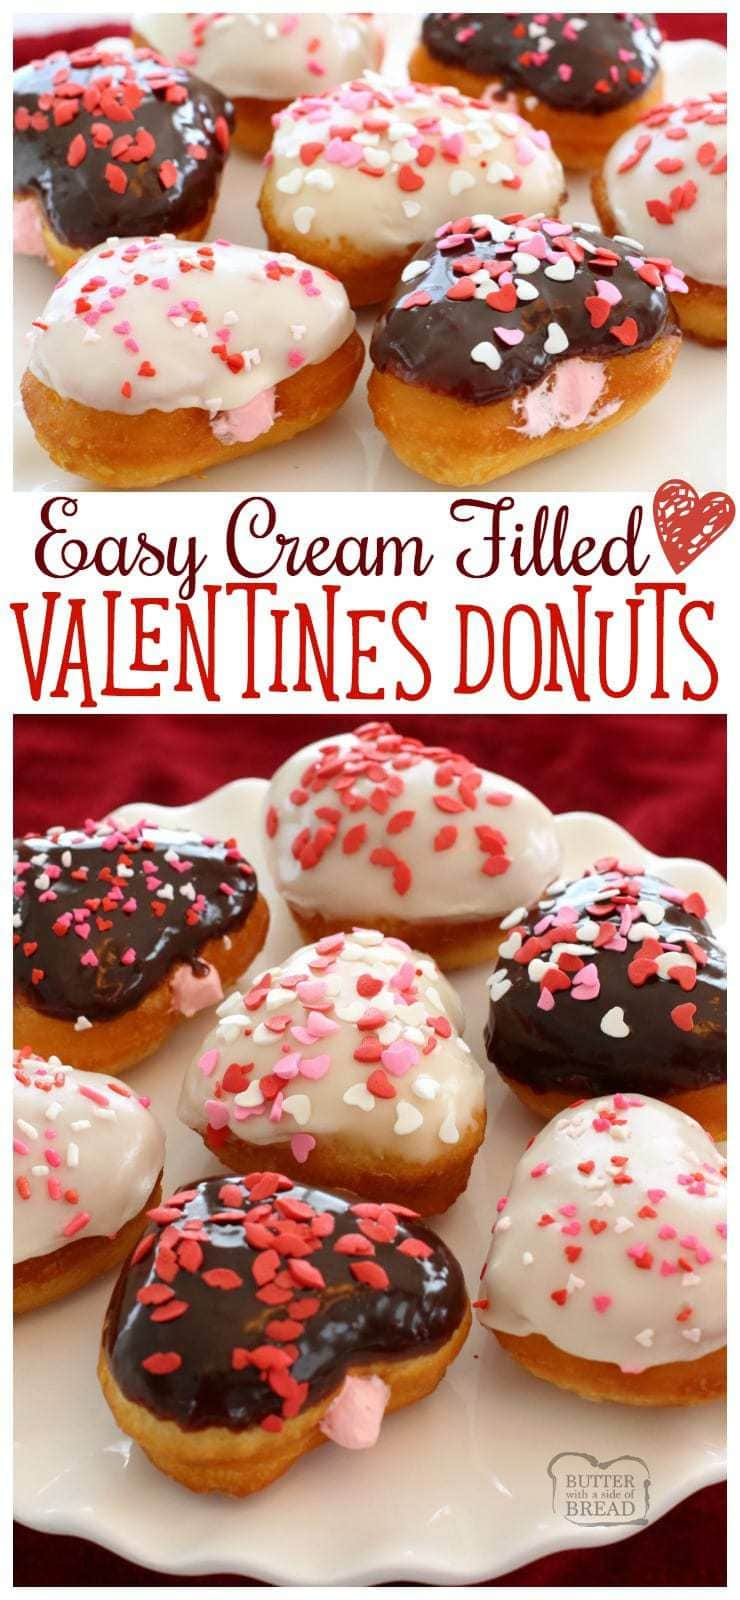 These Easy Valentines Donuts are simple and fast - just start with store-bought biscuits and you'll end with these darling, heart-shaped treats!